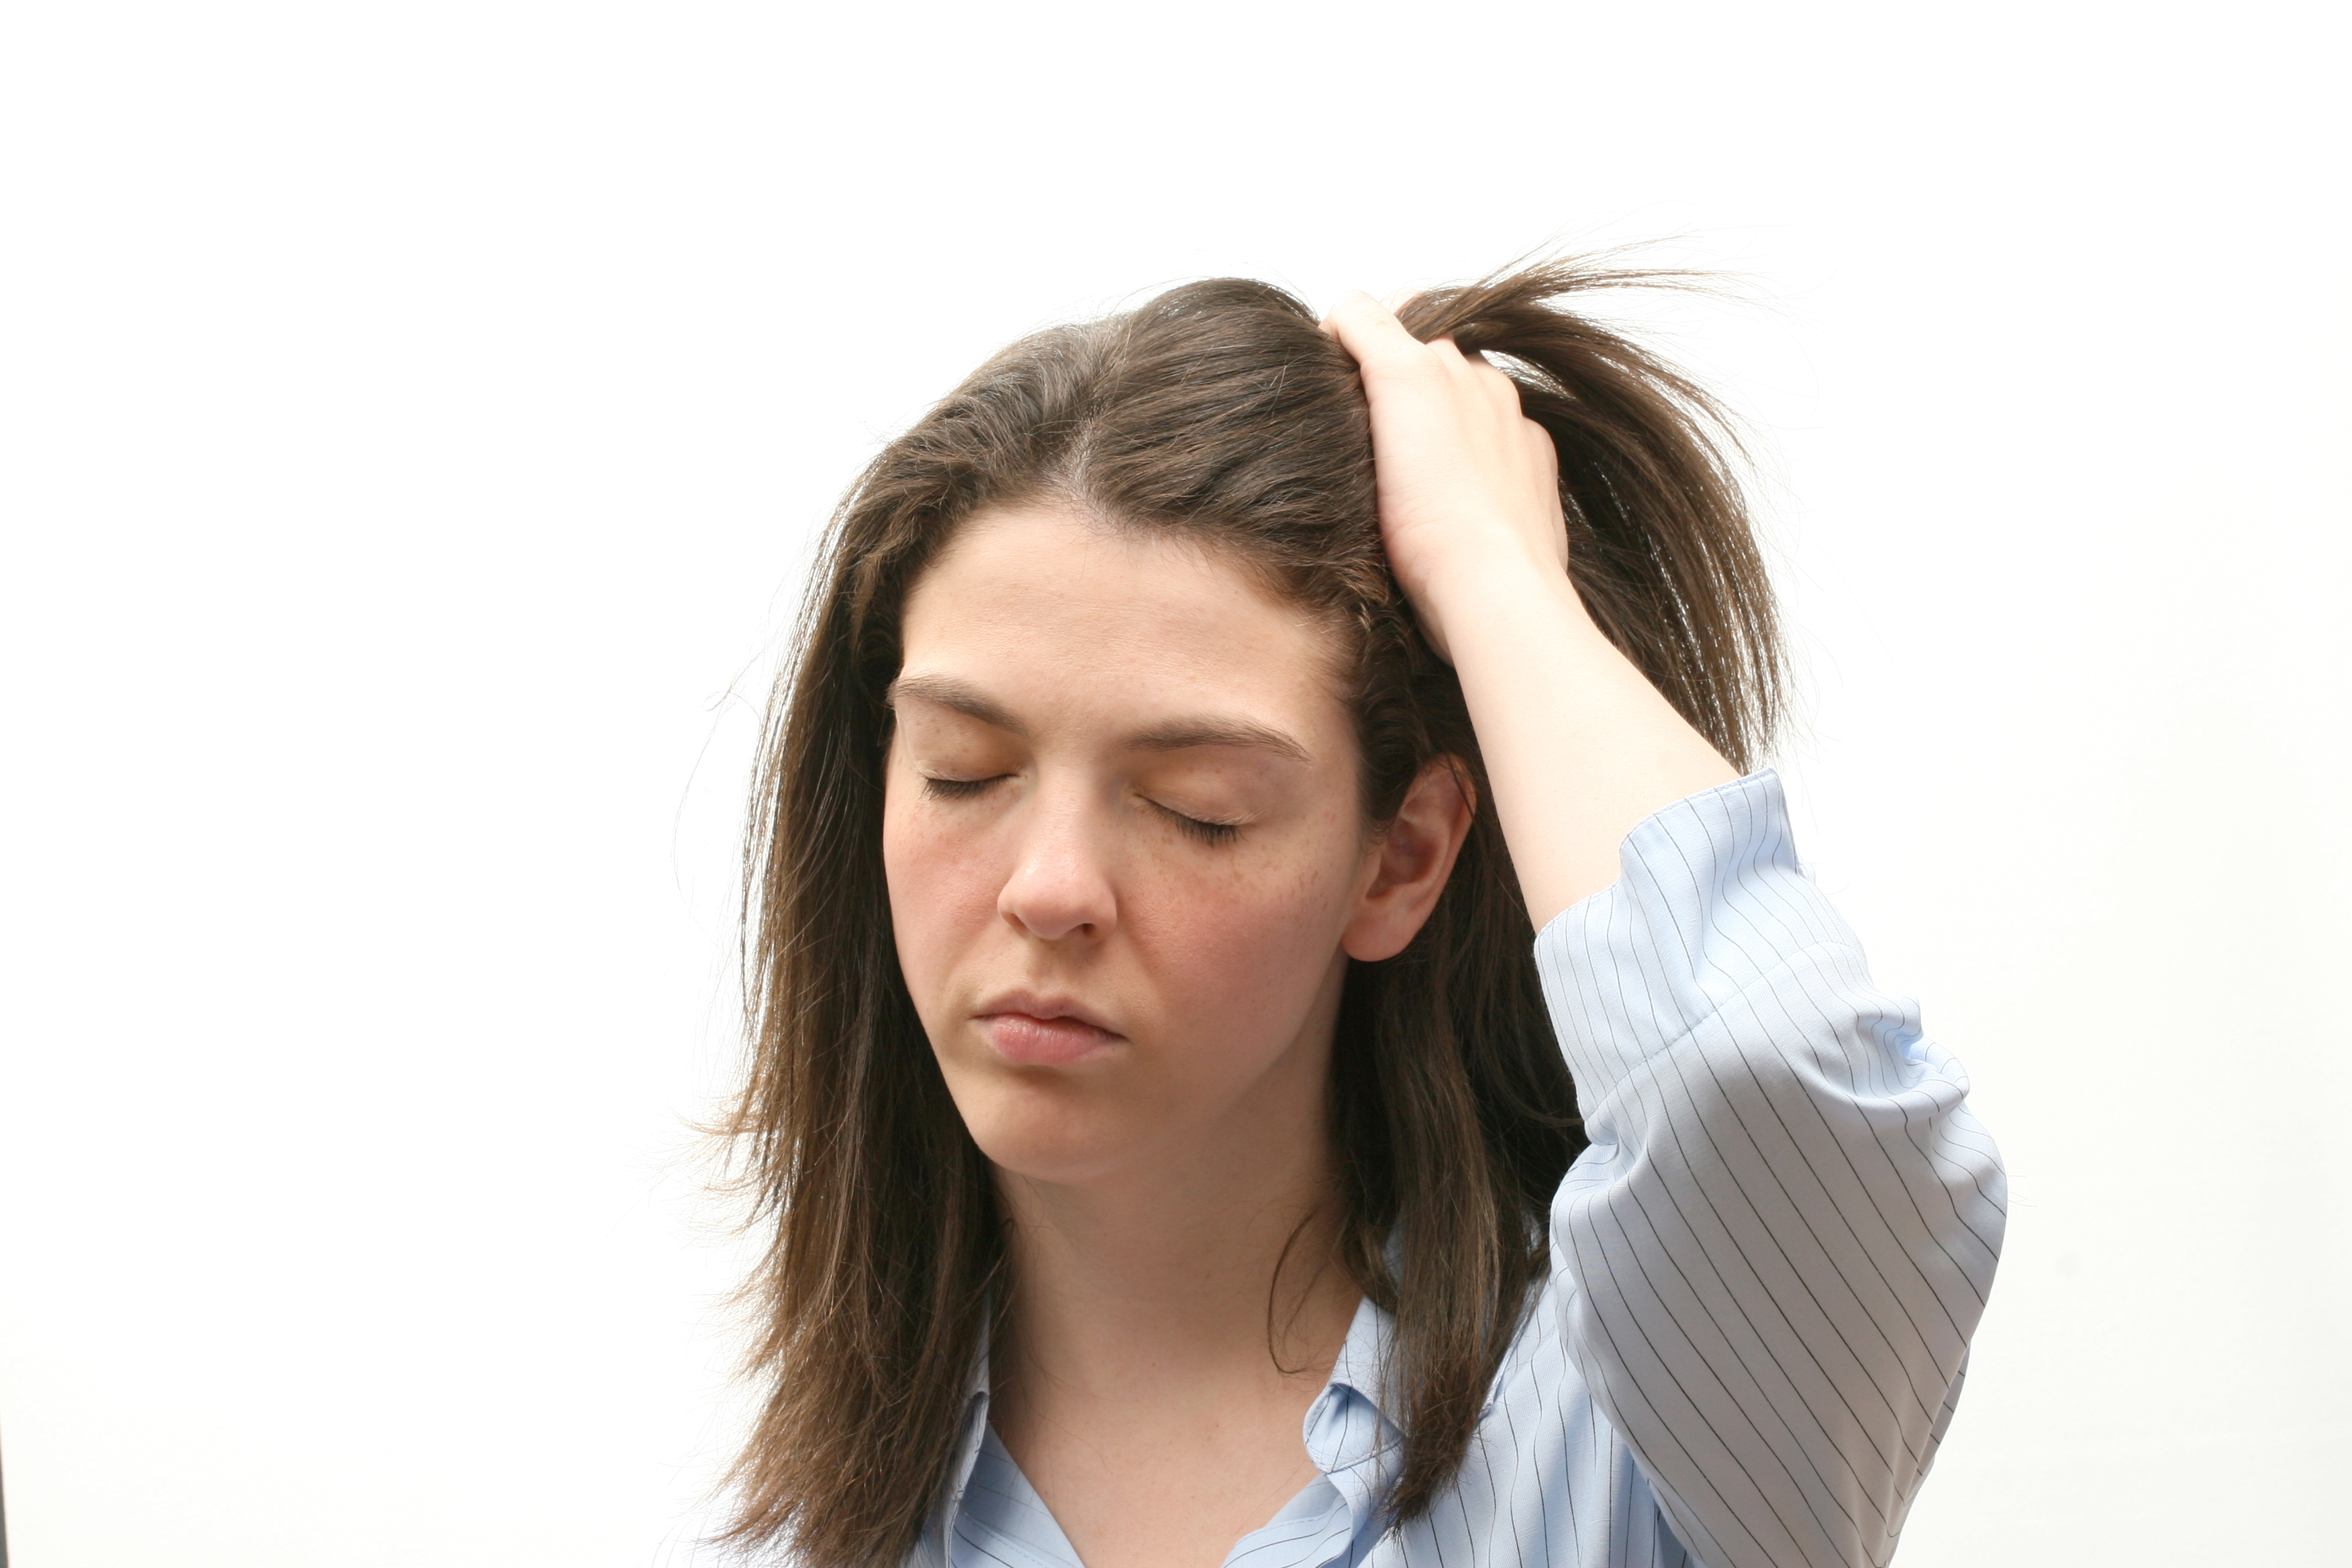 Your Wellness Centre Naturopathy - Stress, Exhaustion, Tired all the Time